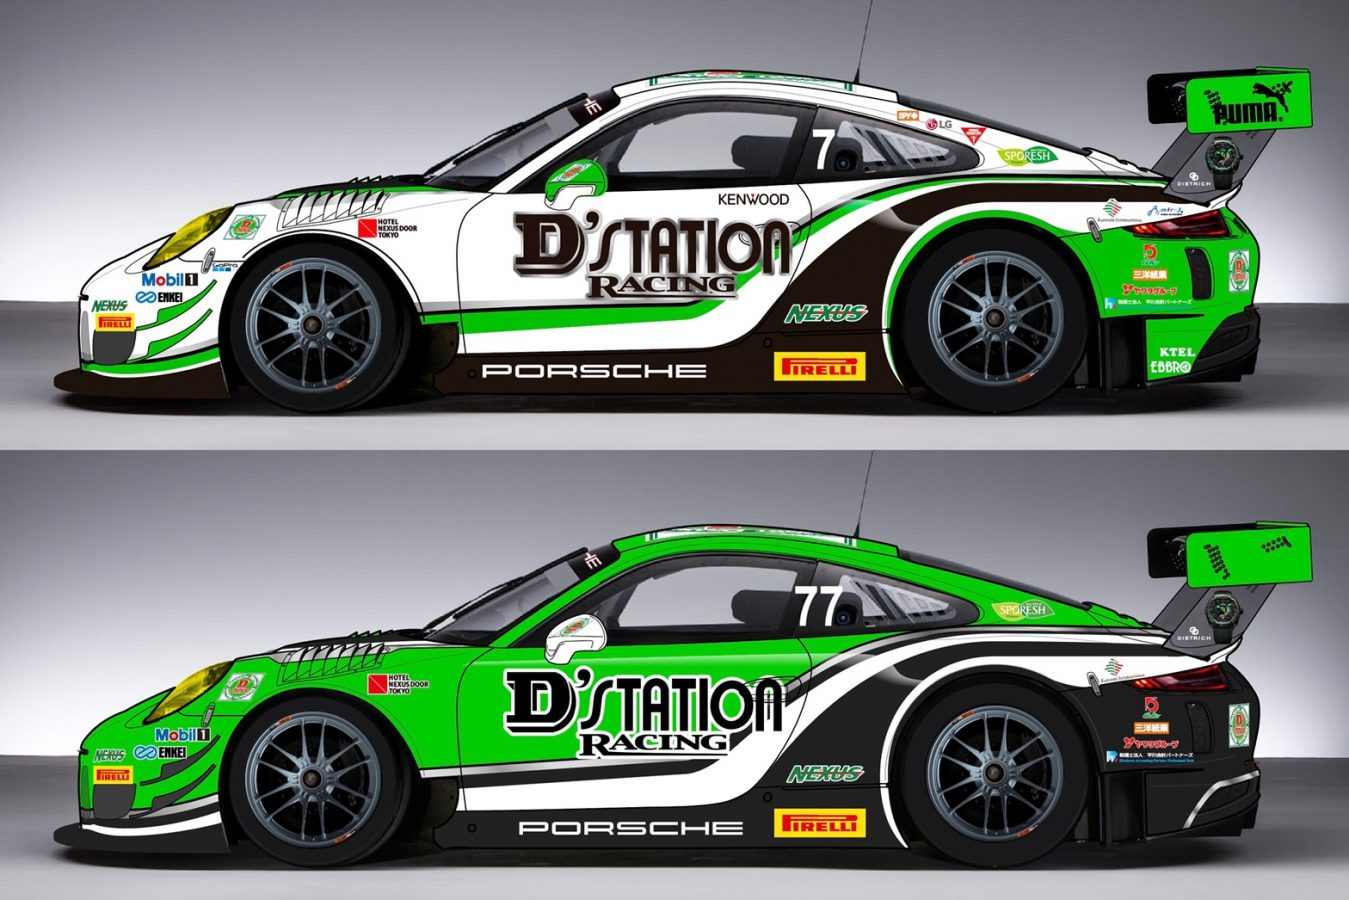 D'station Racing Porsches for the 47th Suzuka 10 Hours